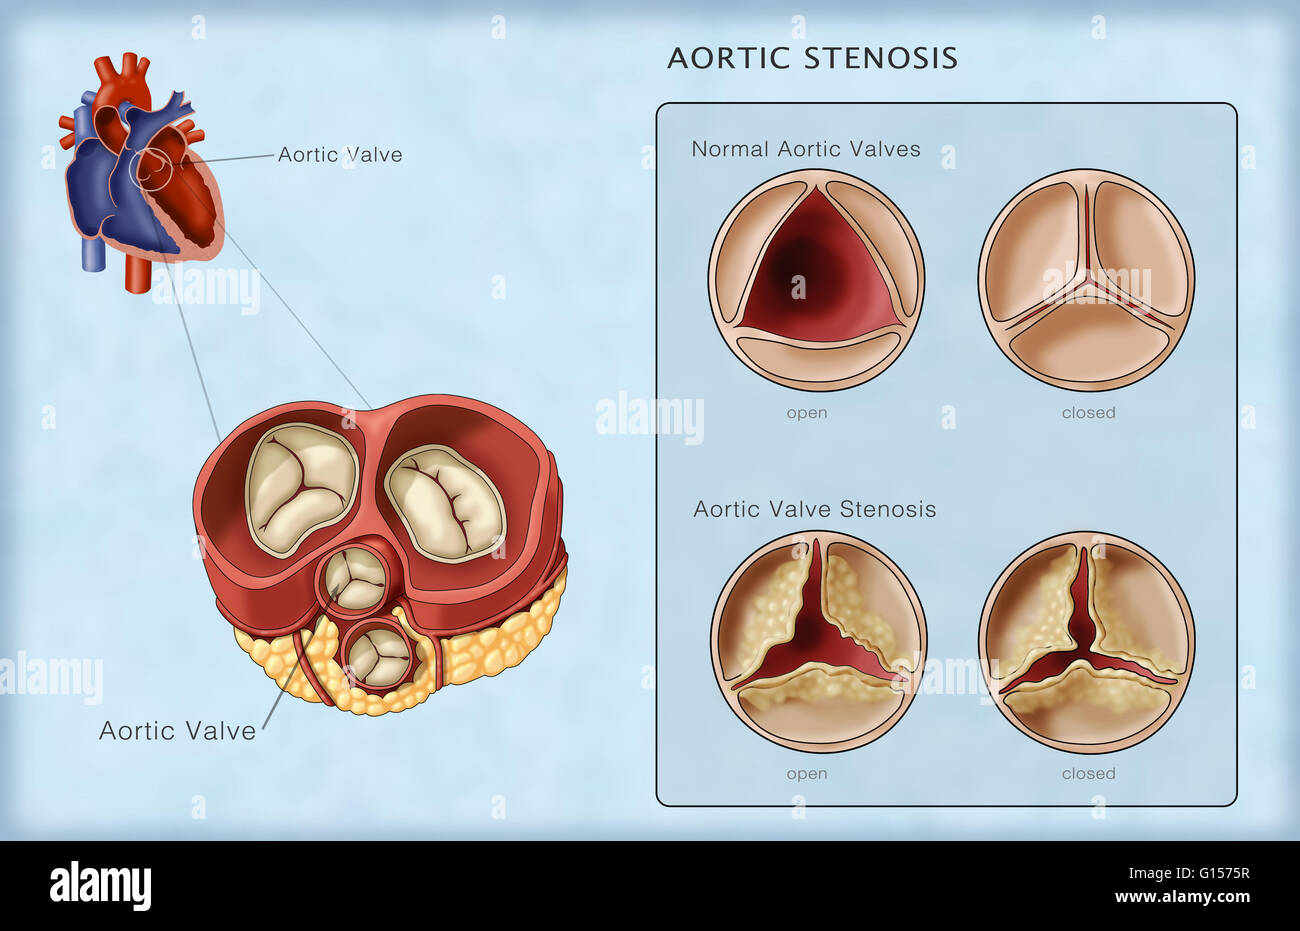 Illustration of normal aortic valves compared to an aortic valve ...